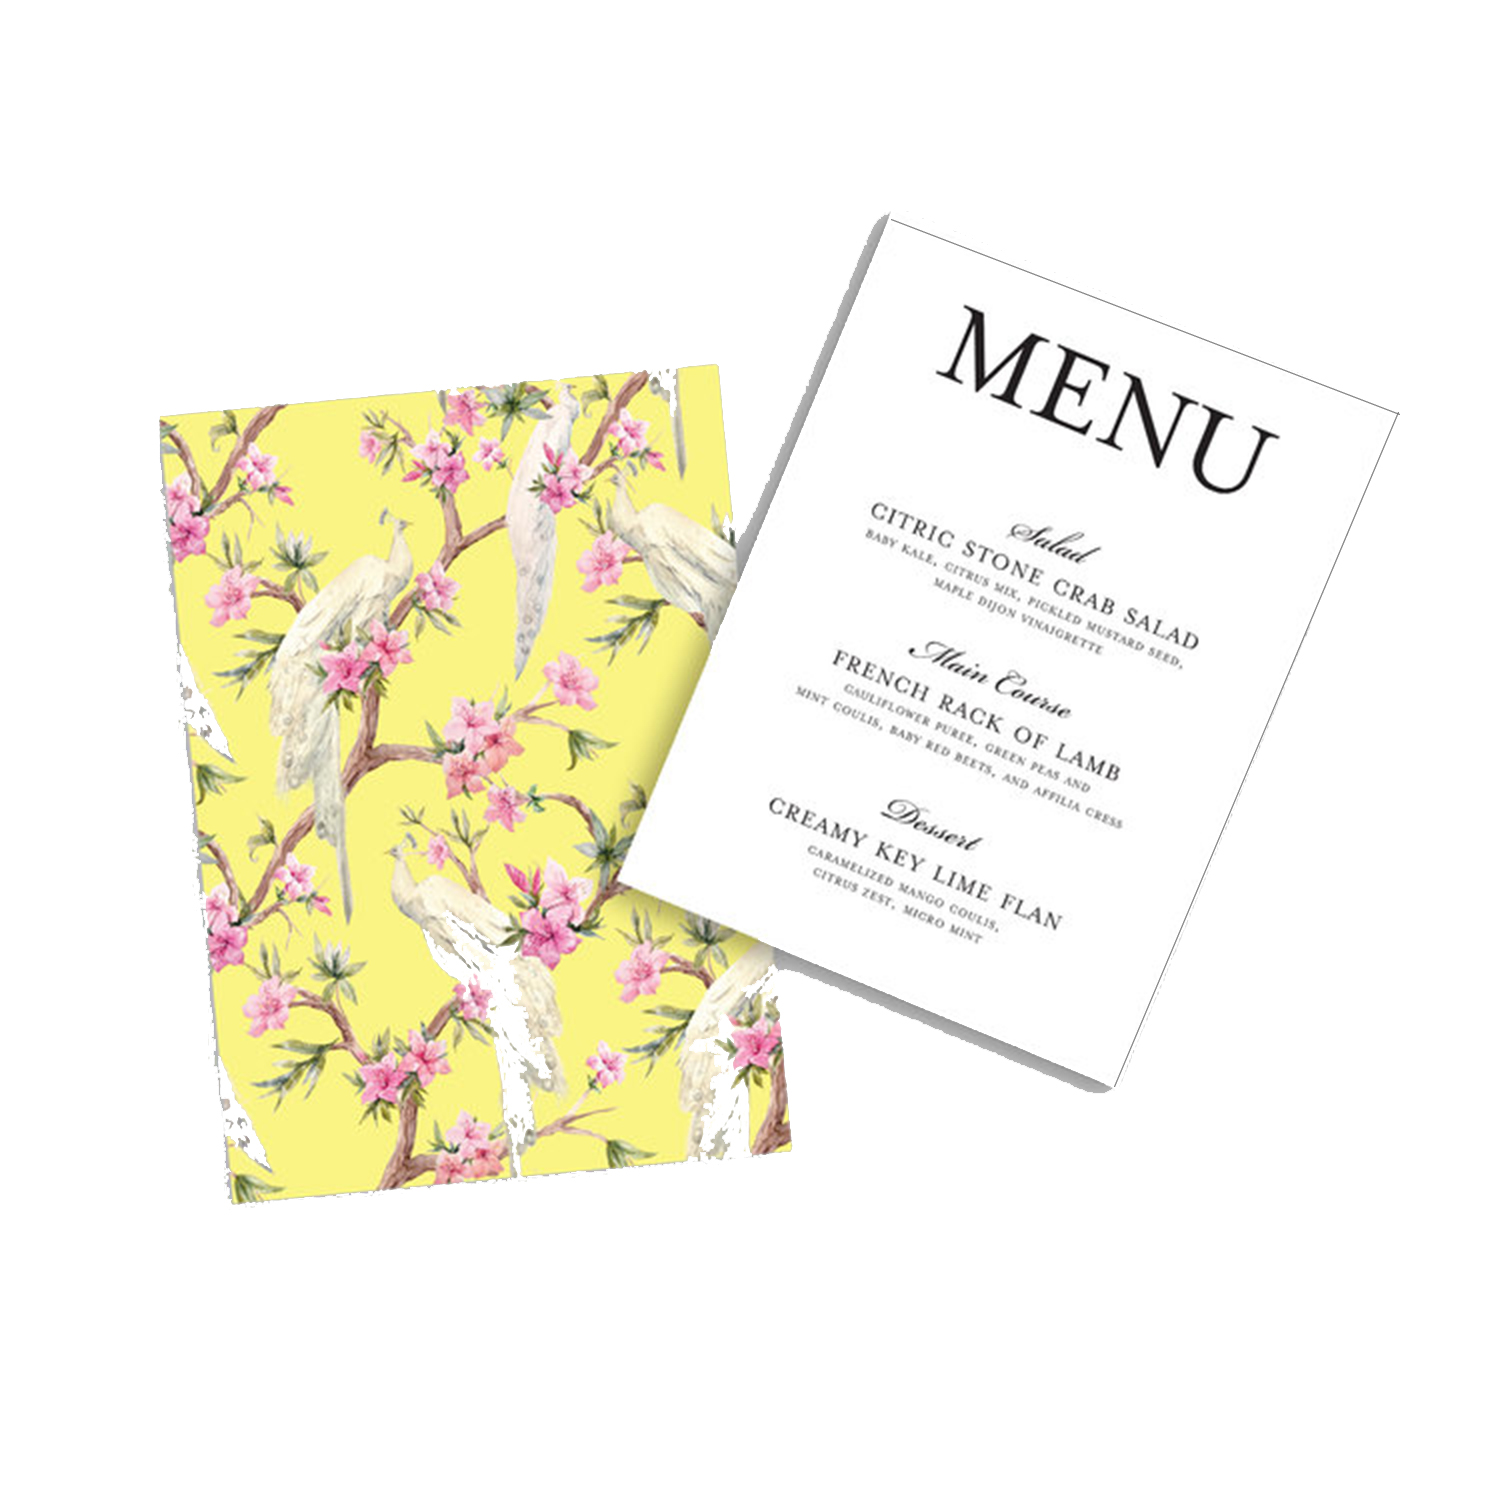 COOL KIDS menus white.jpg